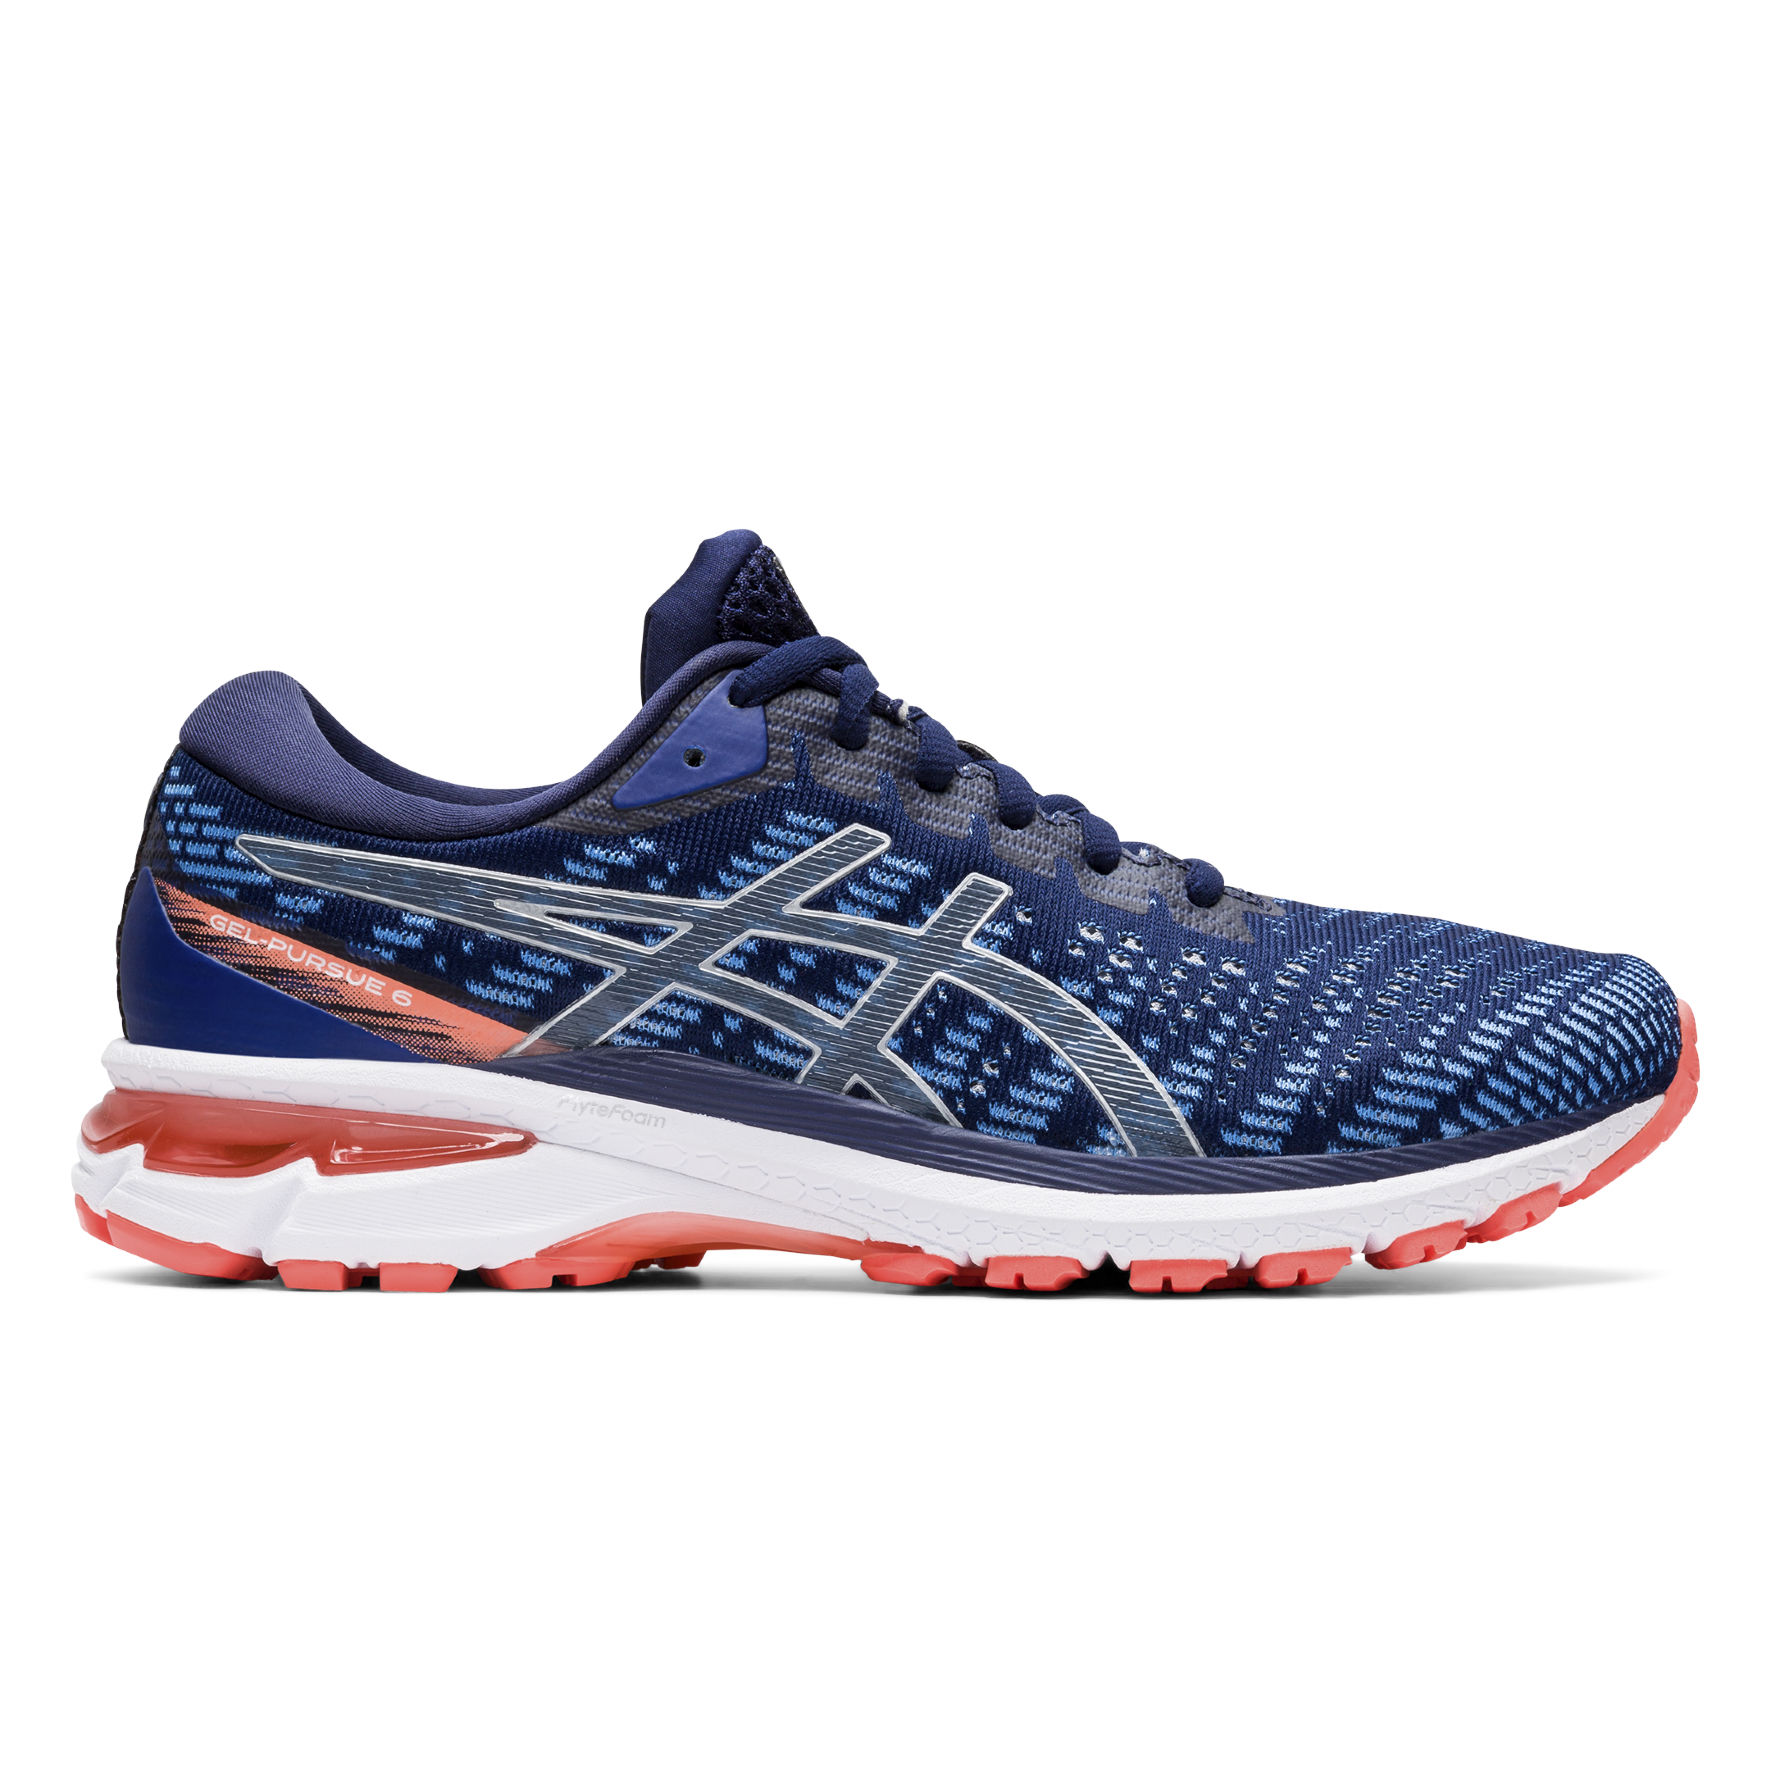 Asics Lady Gel-Pursue 6 (Blau)